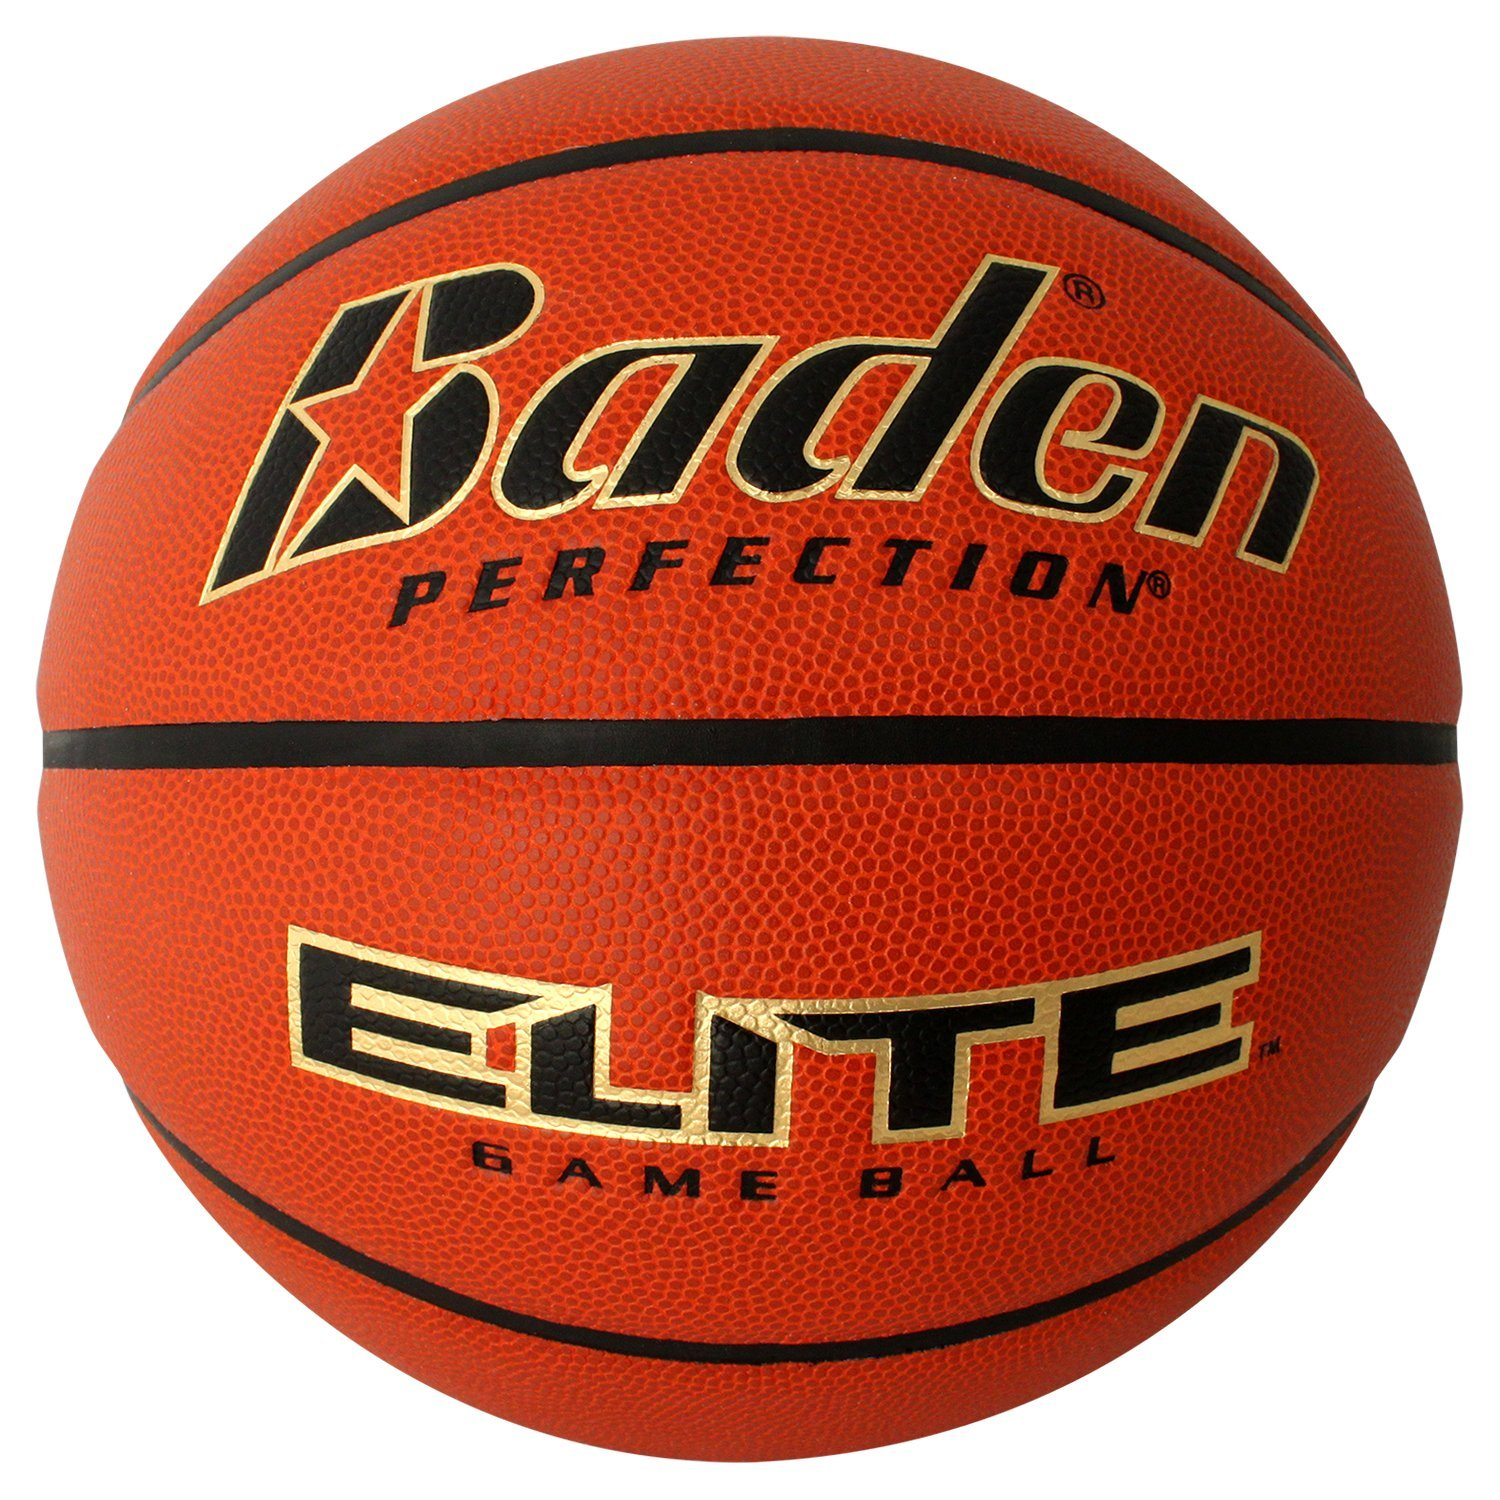 Baden Basketball Elite Indoor Game, NFHS zugelassen 1139594 Natural Orange Color 29.5-Inch BX7E-02E